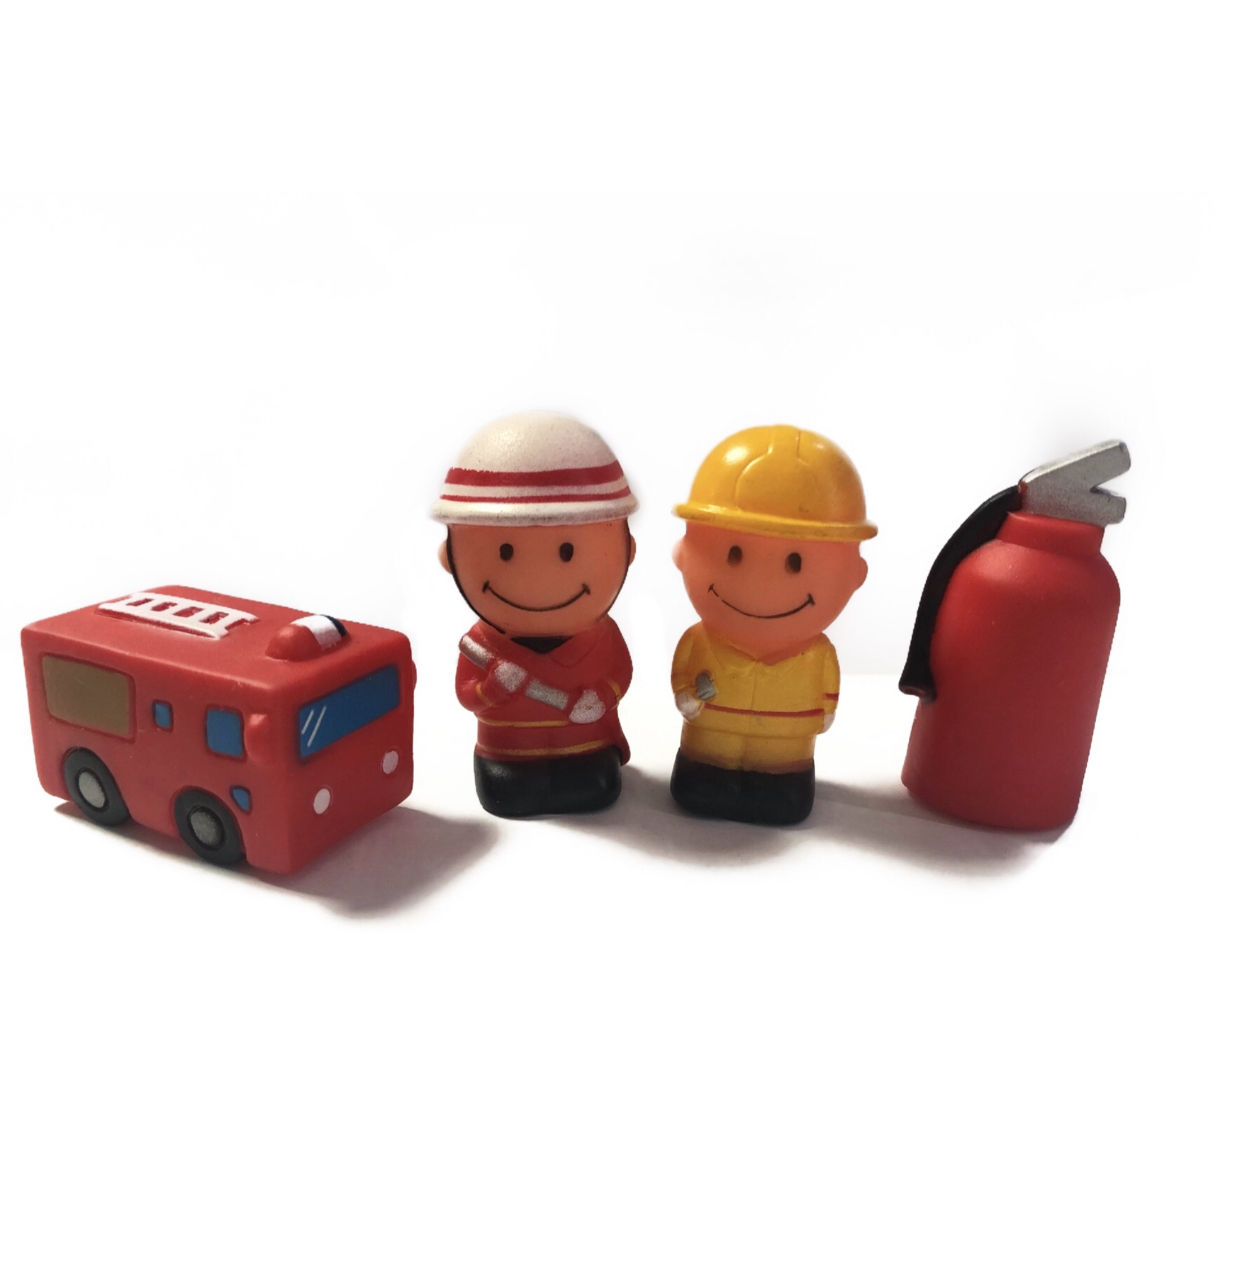 Plastic PVC Educational Rubber Fireman Fire Station For Baby Bath Time And Fun